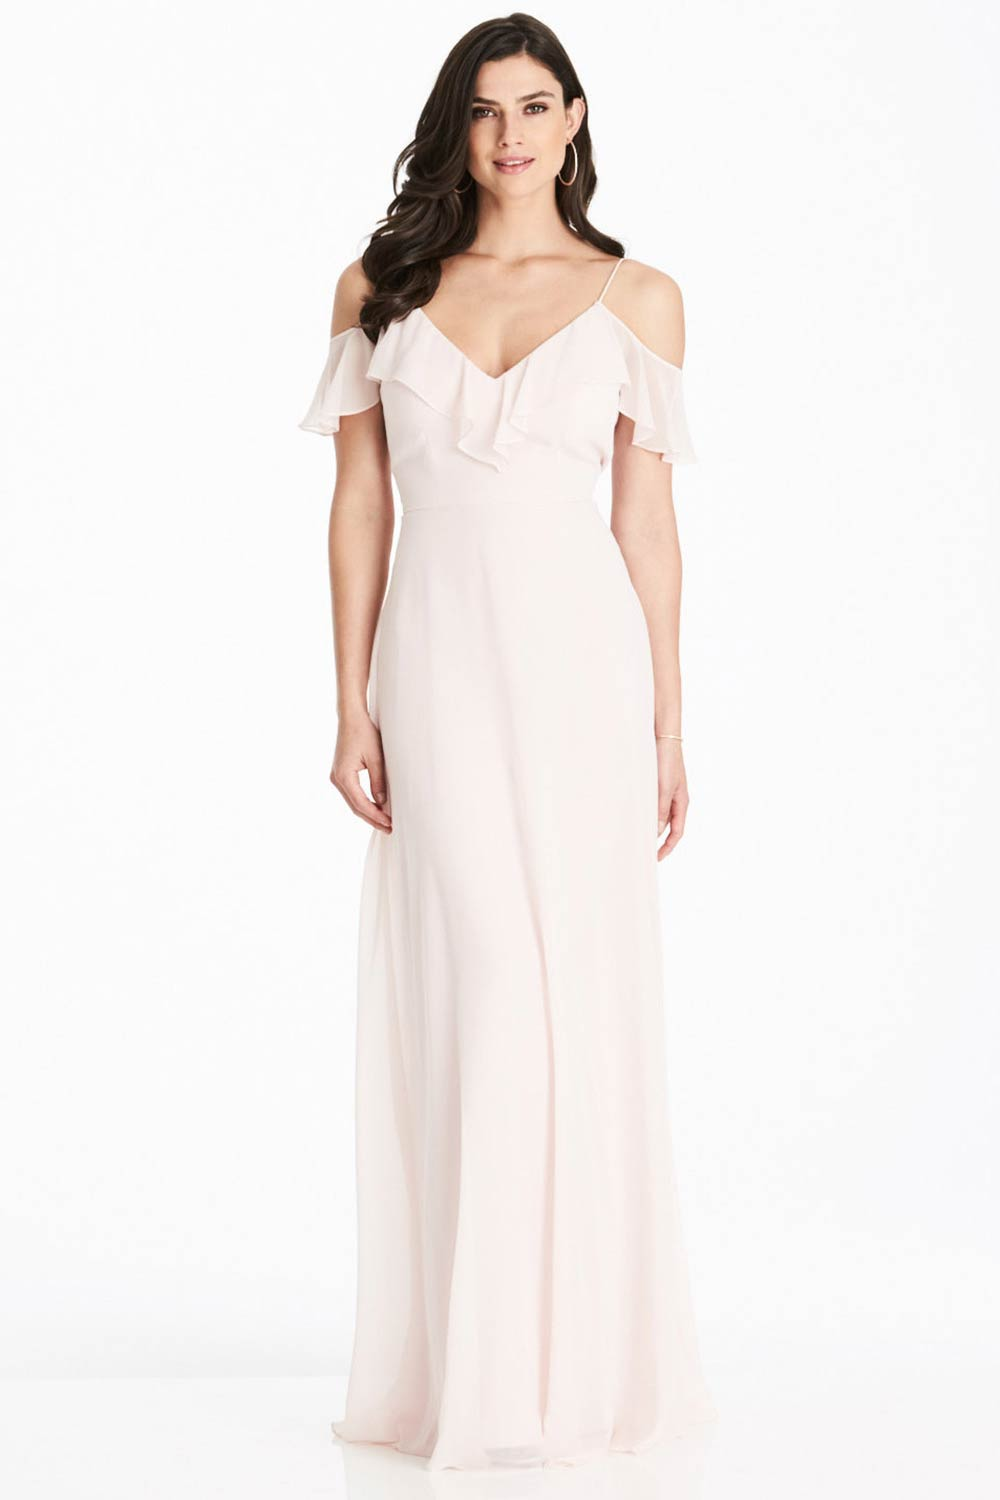 bridesmaid-dresses-dessy-26036